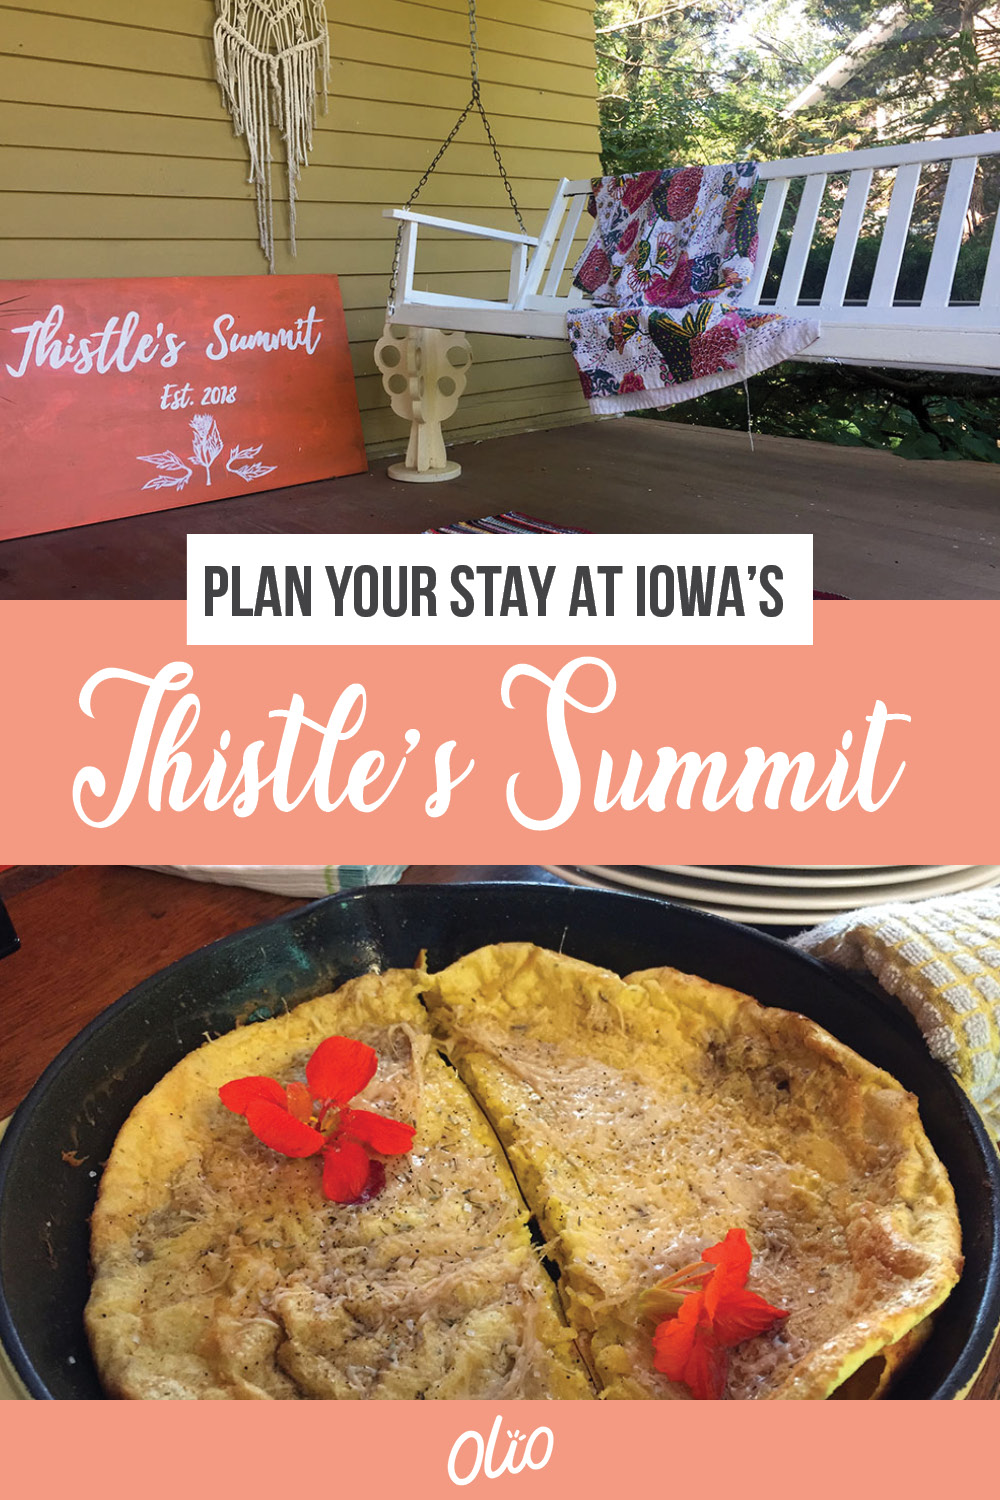 Discover the perfect location for your next Midwestern weekend getaway at Thistle's Summit in Mount Vernon, Iowa! Located steps from the Cornell College campus, Thistle's Summit is a queer bed and breakfast focused on community, creativity and inclusivity. Enjoy phenomenal food, tap into the community's artistic spirit, and, of course, meet Thistle the dog. There's no better place to plan a weekend getaway than Mount Vernon!